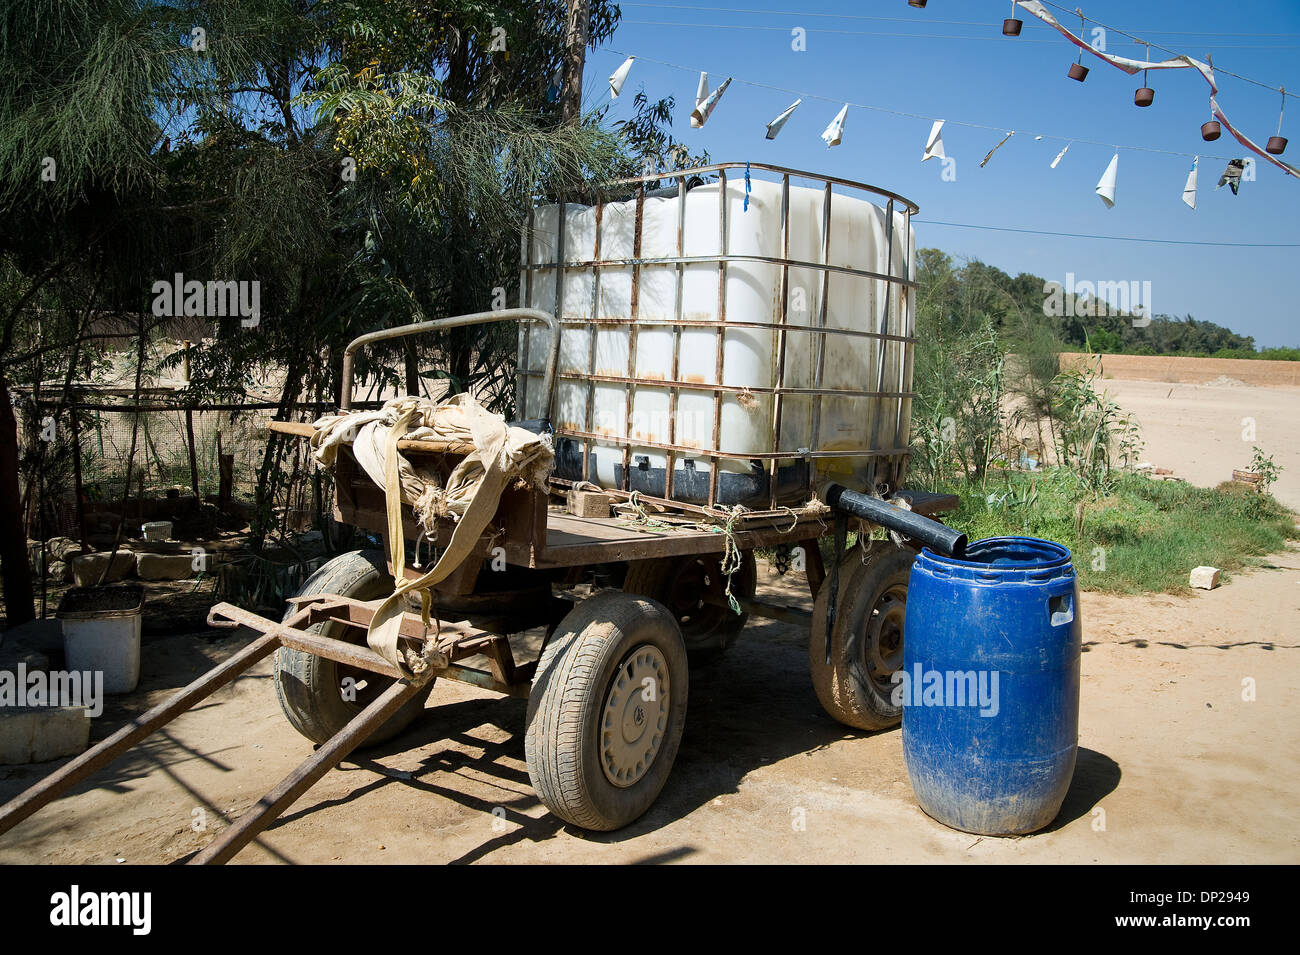 A family without running water has to use water tanks. - Stock Image